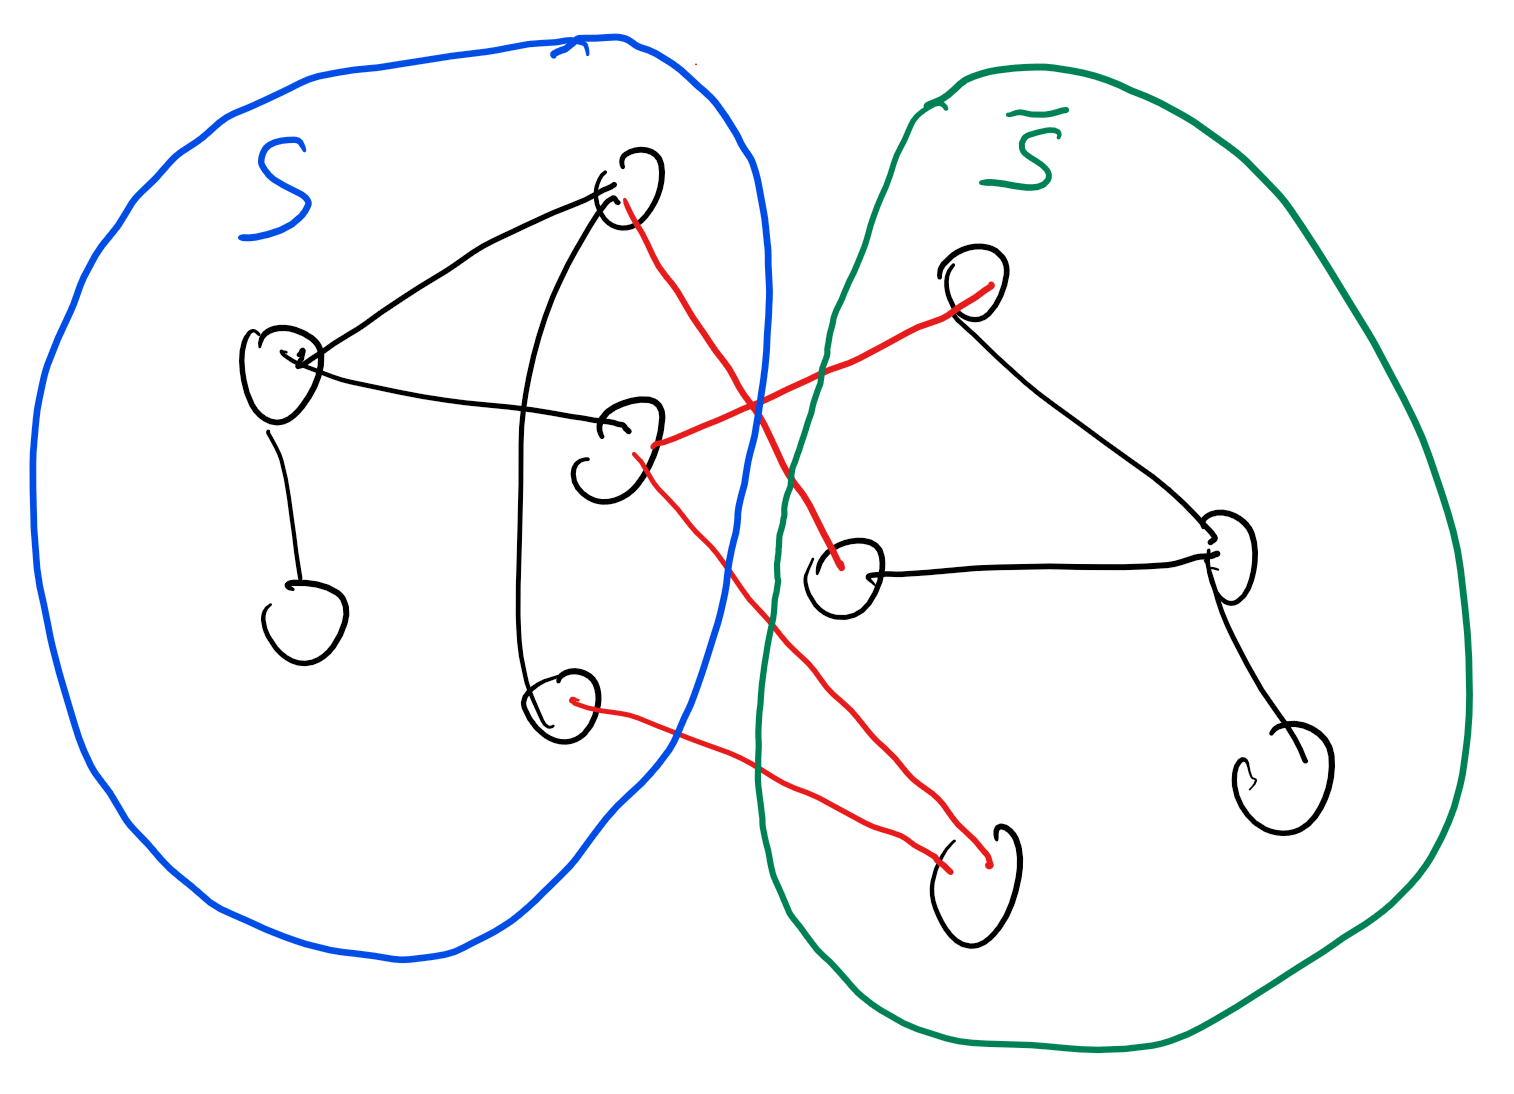 11.3: A cut in a graph G=(V,E) is simply a subset S of its vertices. The edges that are cut by S are all those whose one endpoint is in S and the other one is in \overline{S} = V \setminus S. The cut edges are colored red in this figure.